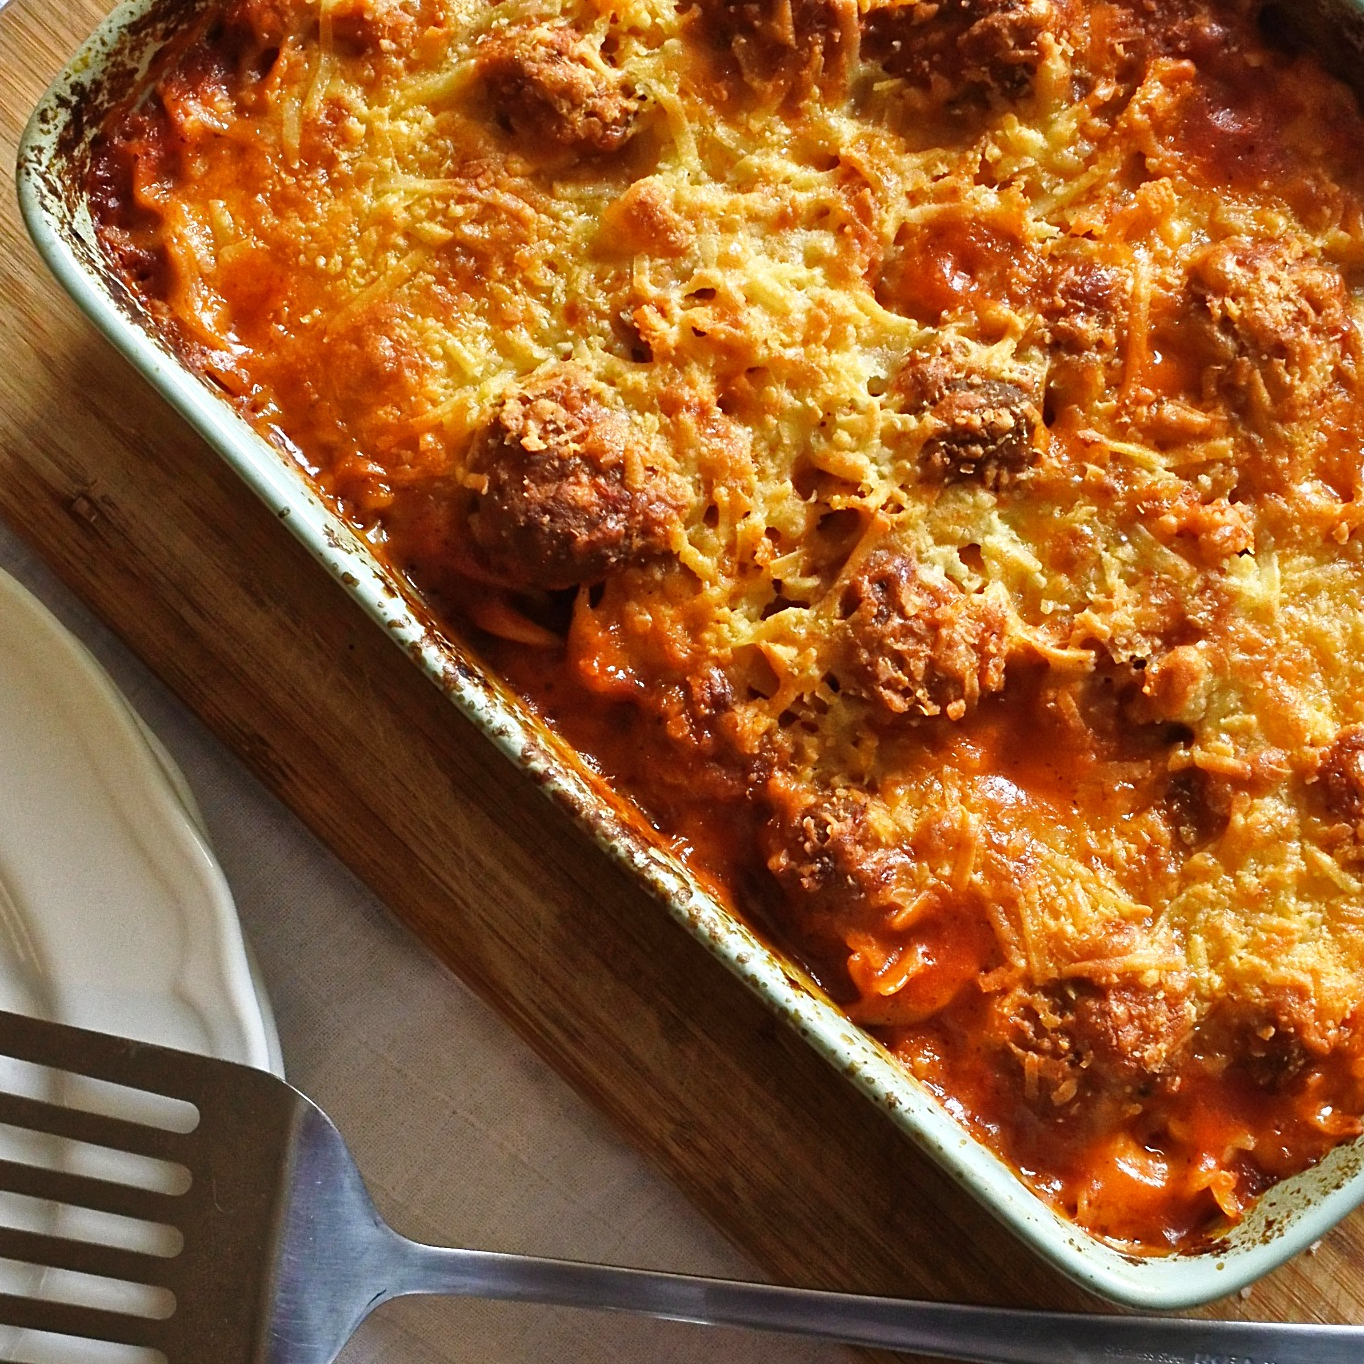 Roasted Red Pepper and Tomato Pasta Bake with Meatballs